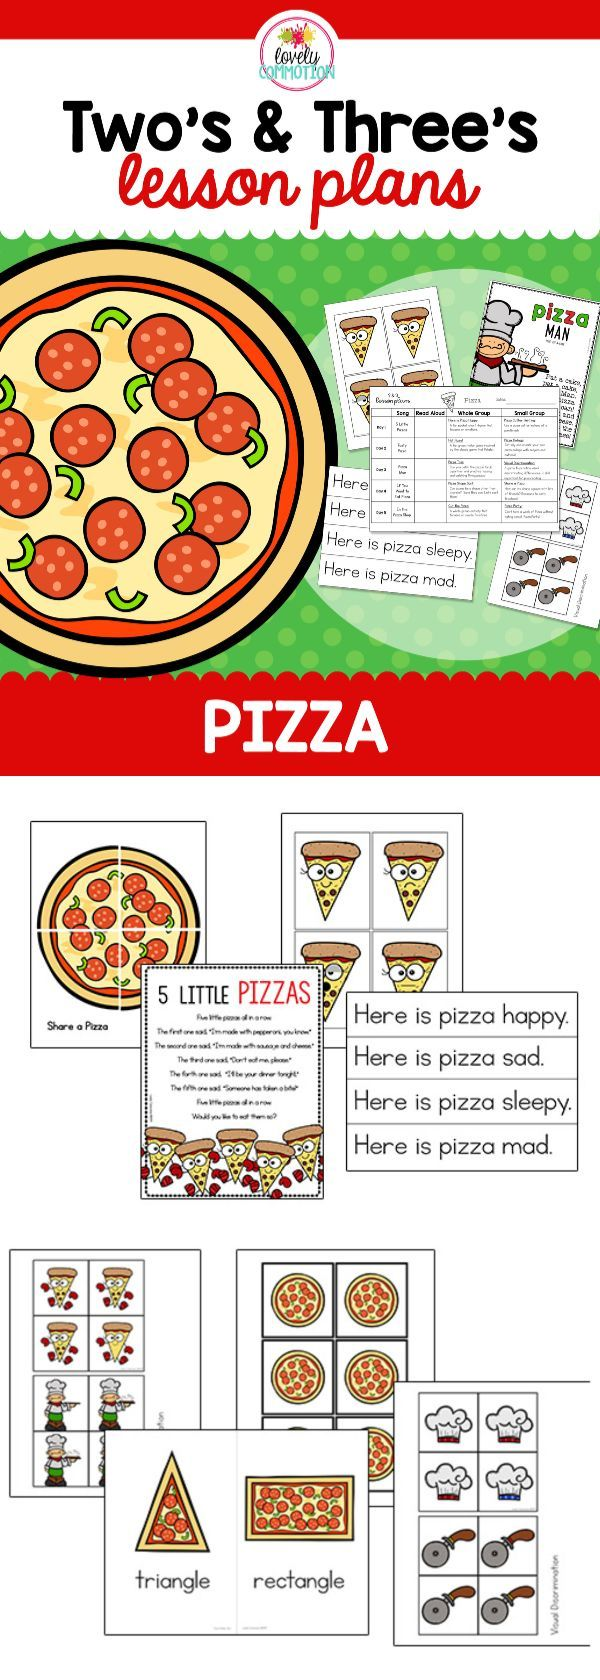 Two And Three S Pizza Lesson Plans Math Lesson Plans Lesson Plans Preschool Lesson Plans [ 1680 x 600 Pixel ]